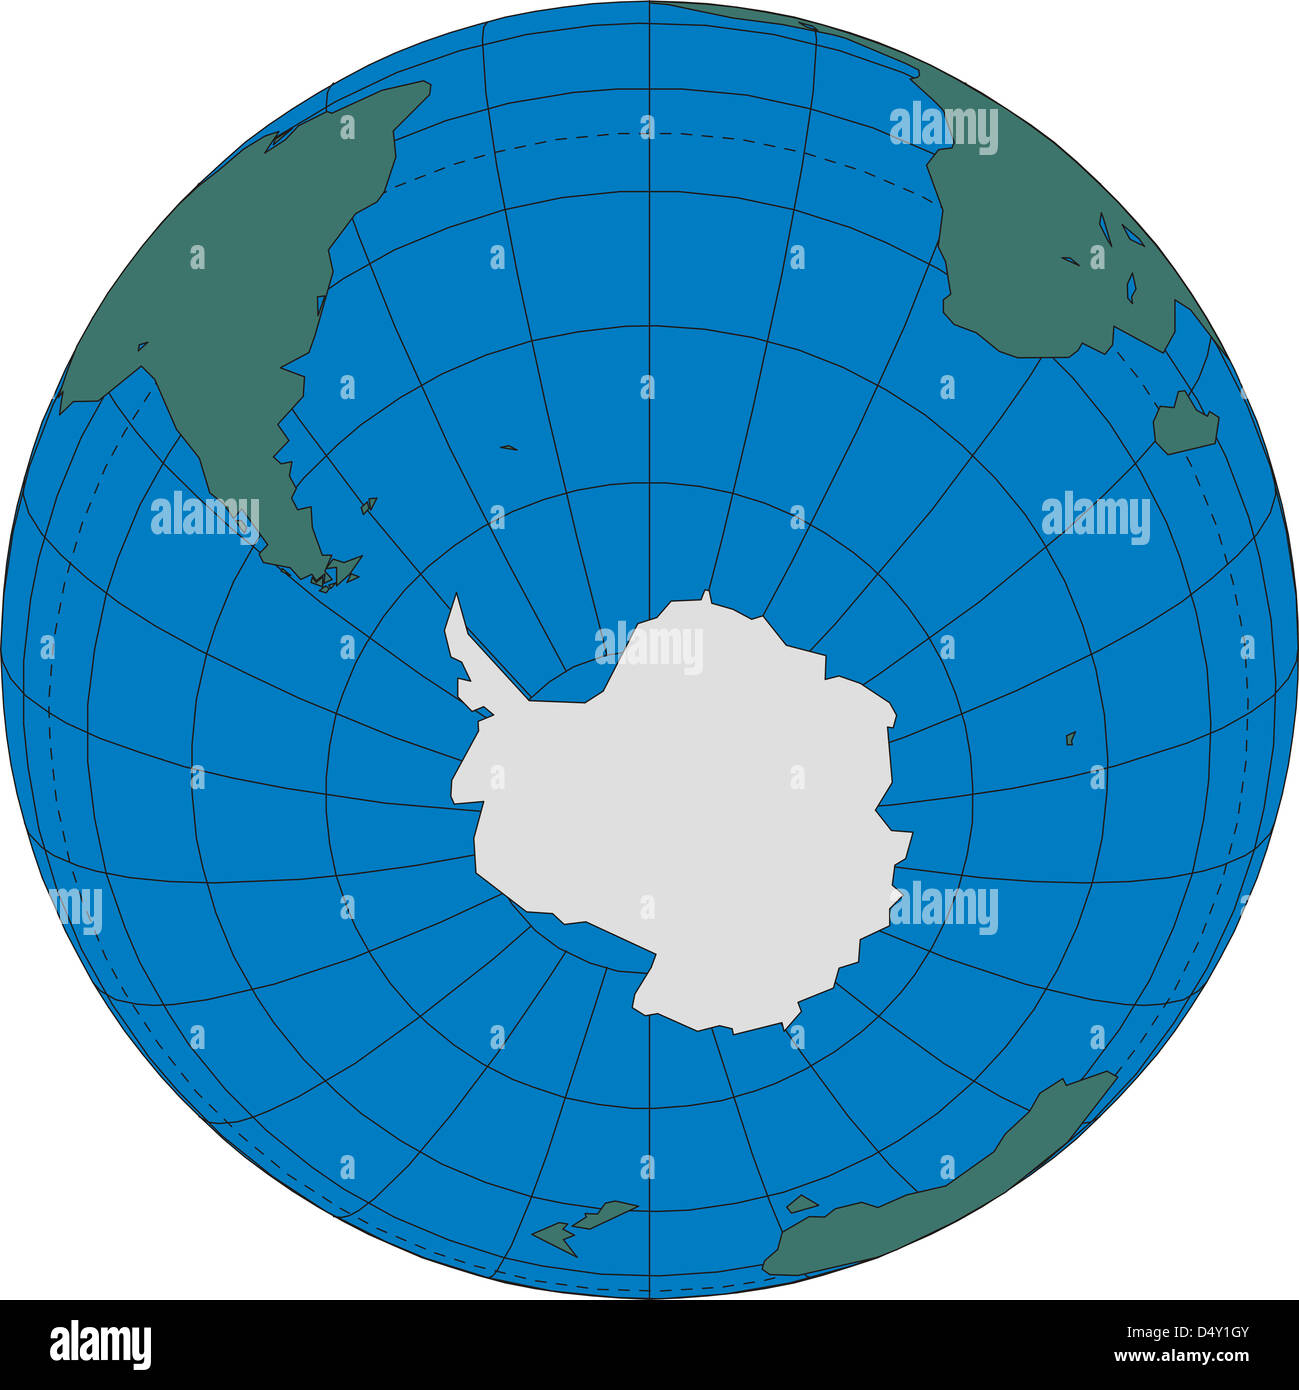 World map globe Antarctica South Pole Stock Photo: 54683691 ...